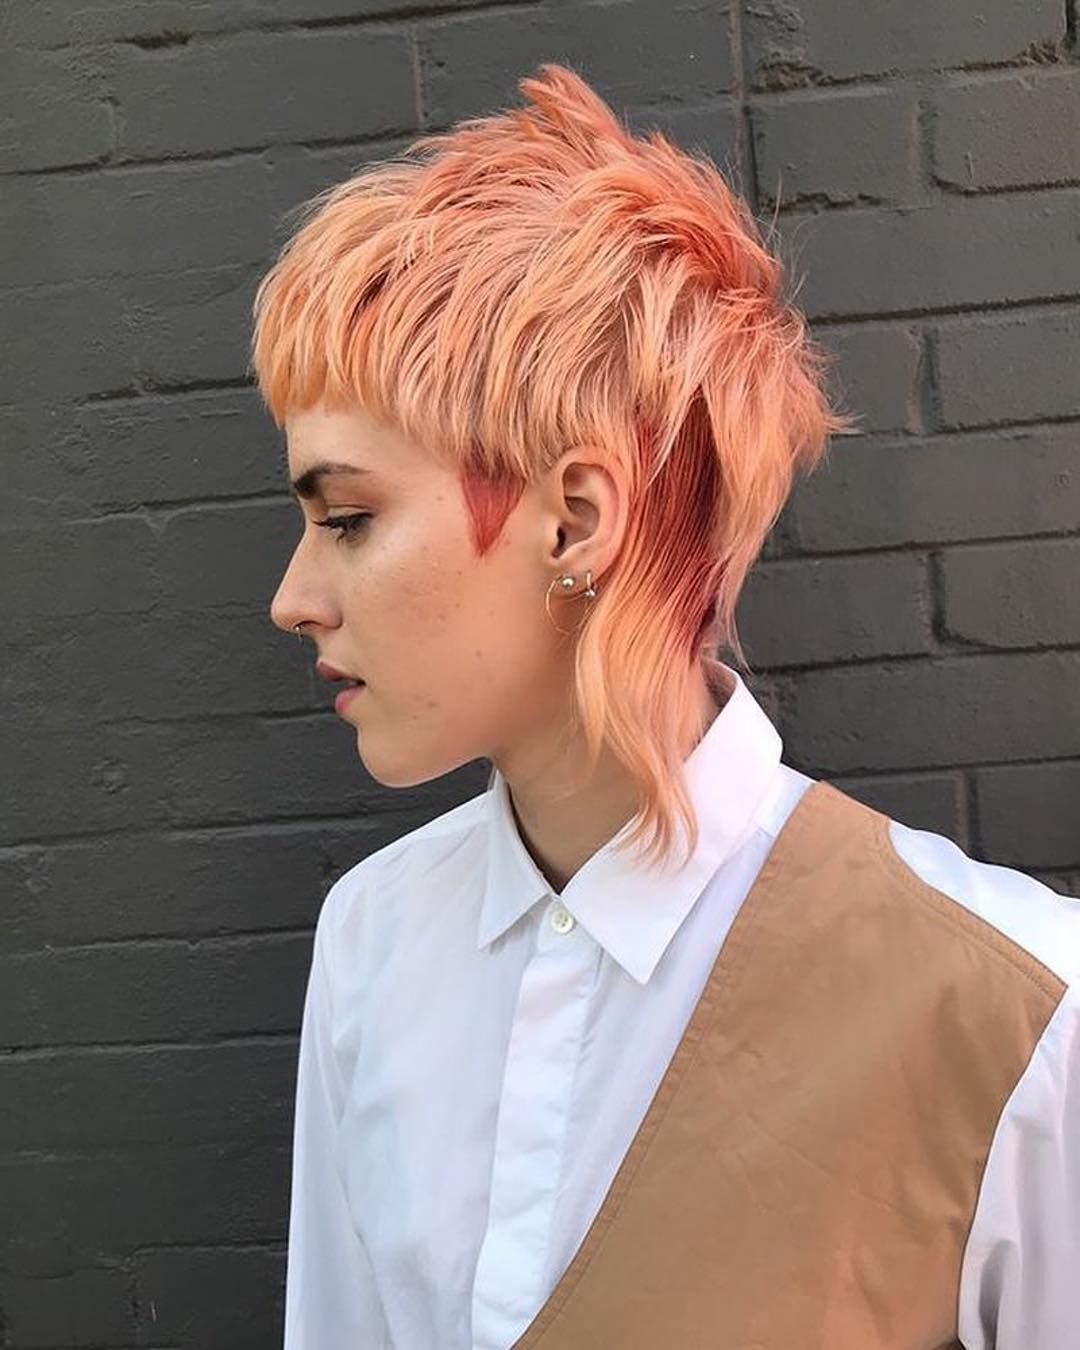 Elevate Hair On Instagram One Of The Top Mullets Of The Year By Charlenefernandezhair Mulletmonday Elevateh Mullet Hairstyle Global Hair Alternative Hair